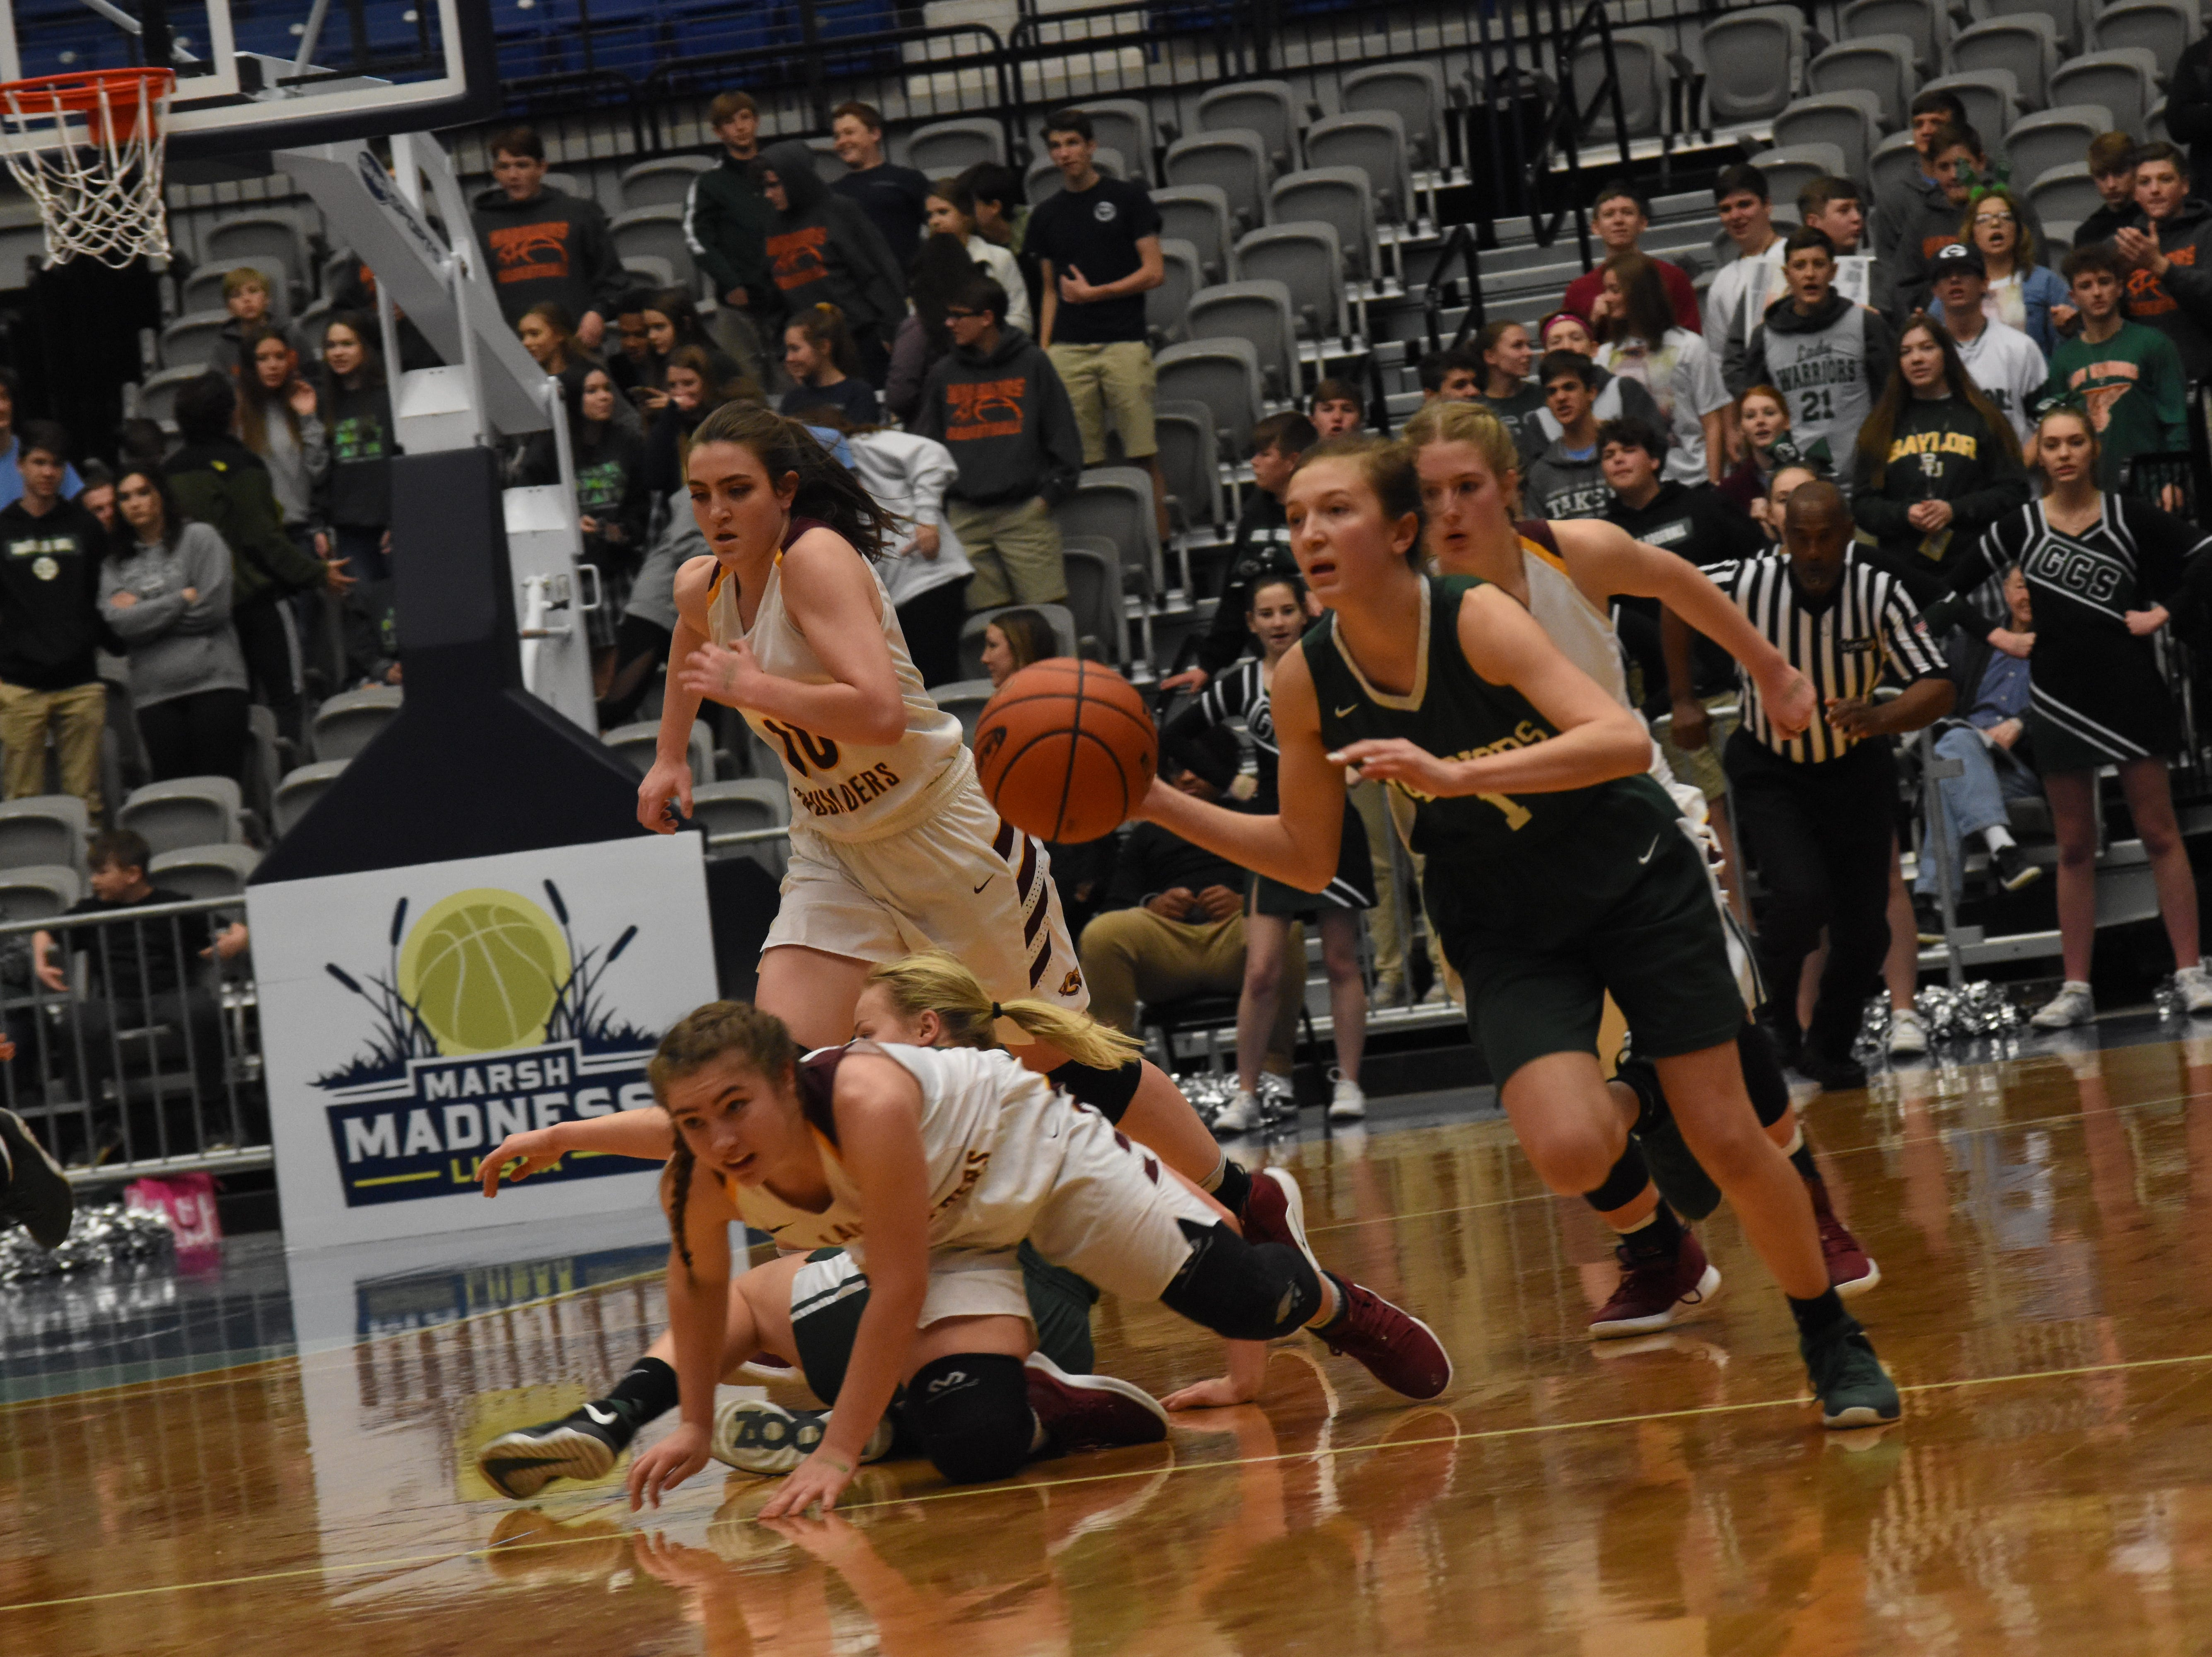 Grace Christian School of Alexandria plays Claiborne Christian School of Monroe in the Division V semi-finals of the 2019 AllState Sugar Bowl Louisiana High School Athletic Association Basketball Marsh Madness held Monday, Feb. 25, 2019 at the Rapides Parish Coliseum. The LHSAA Marsh Madness will continue until Saturday.3 Claiborne won 36-26 and advanced to the Division V state championship.